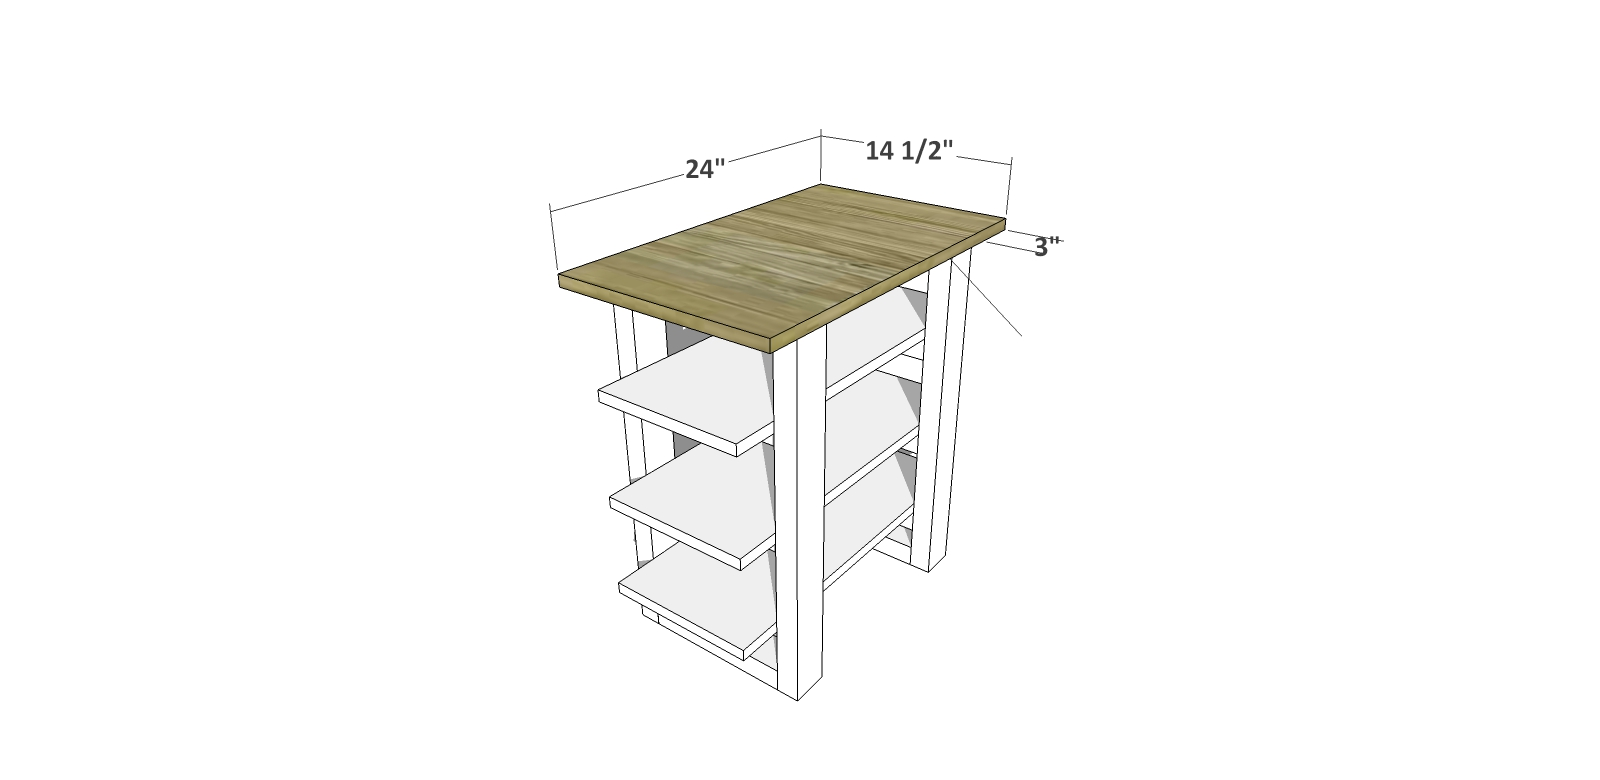 DIY Furniture Plans // How to Build a Sauder Shelf Table